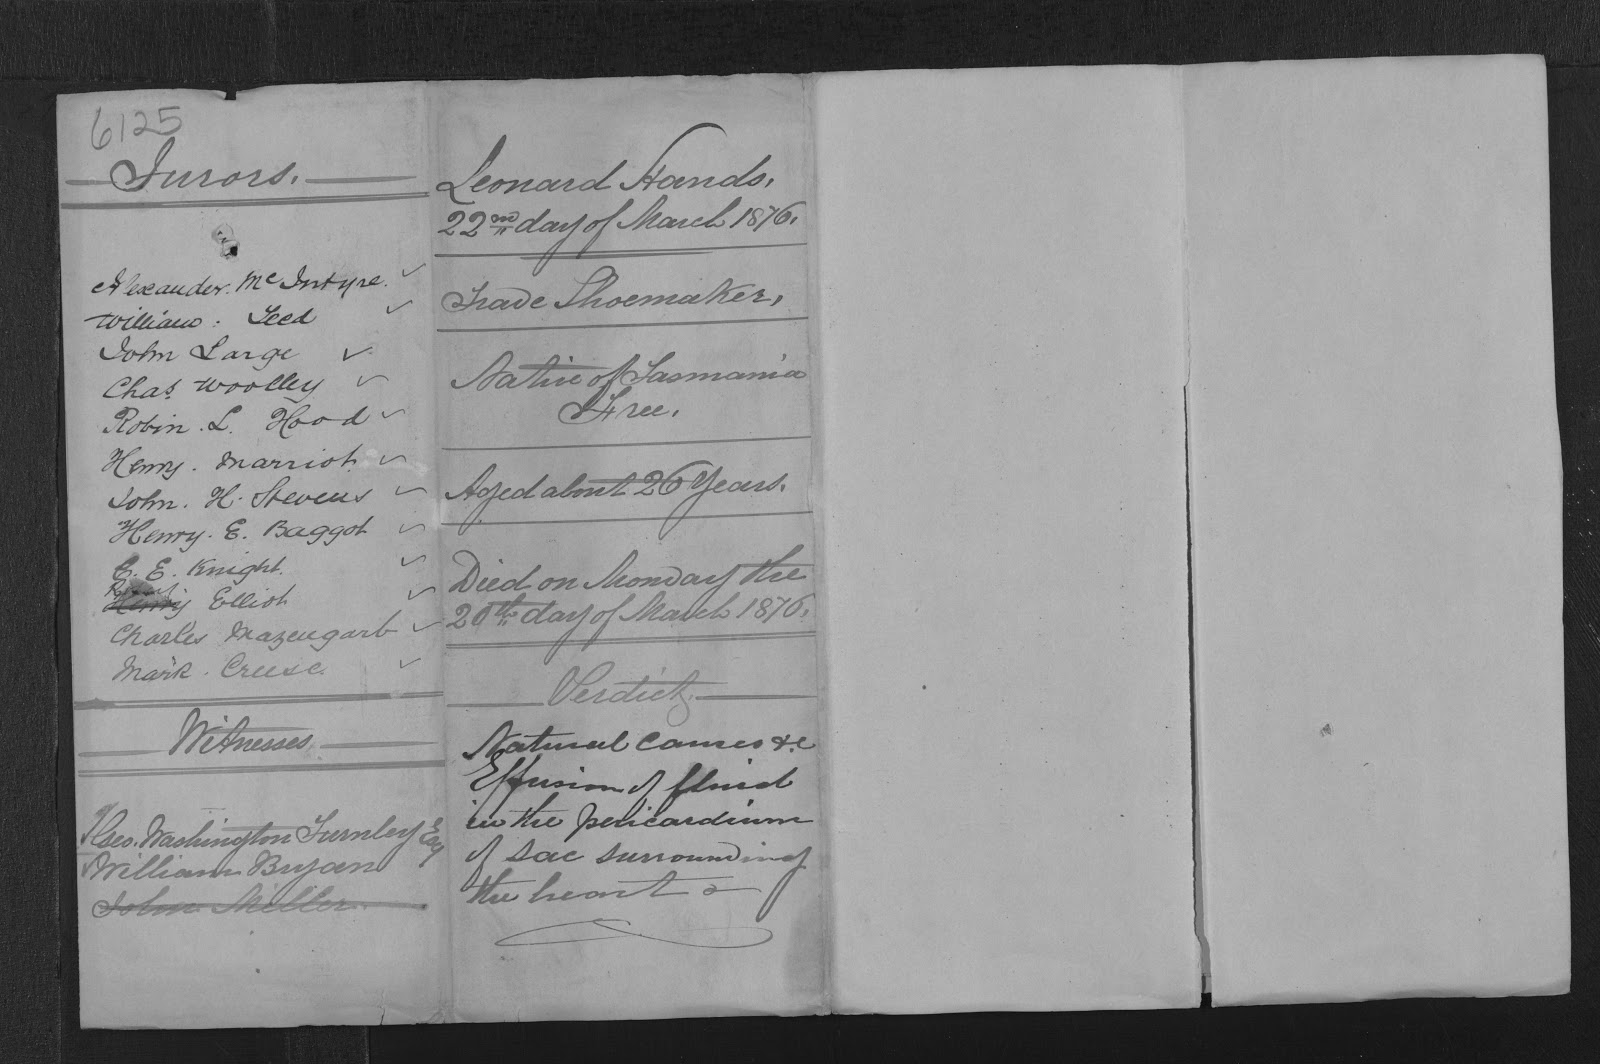 who can witness a document in tasmania